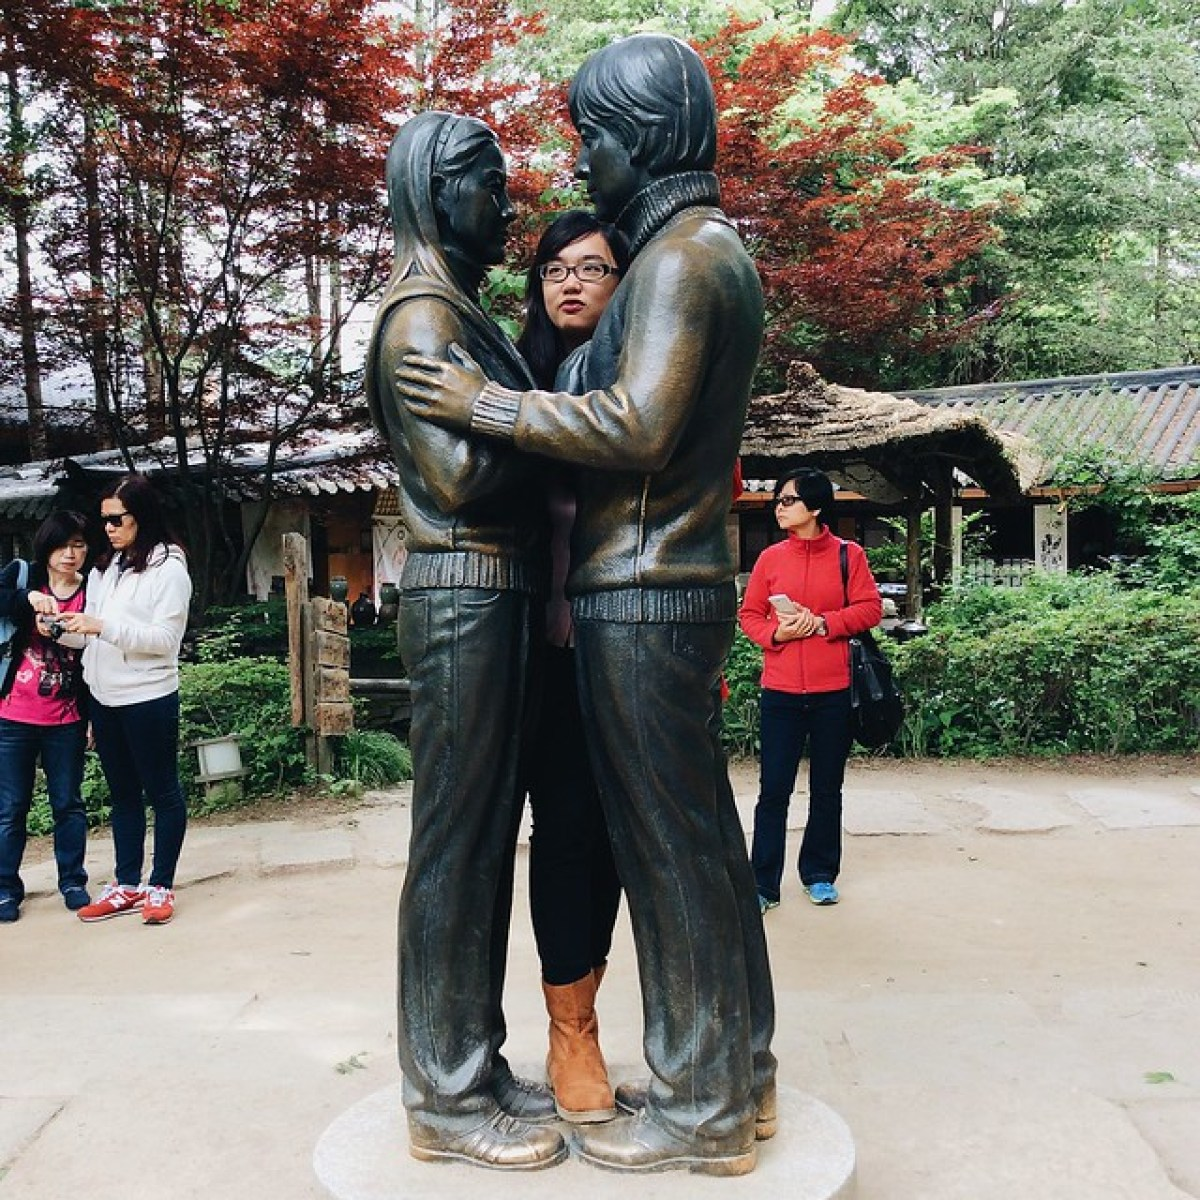 A copper statue of the famous actors of Endless Love Winter Sonata